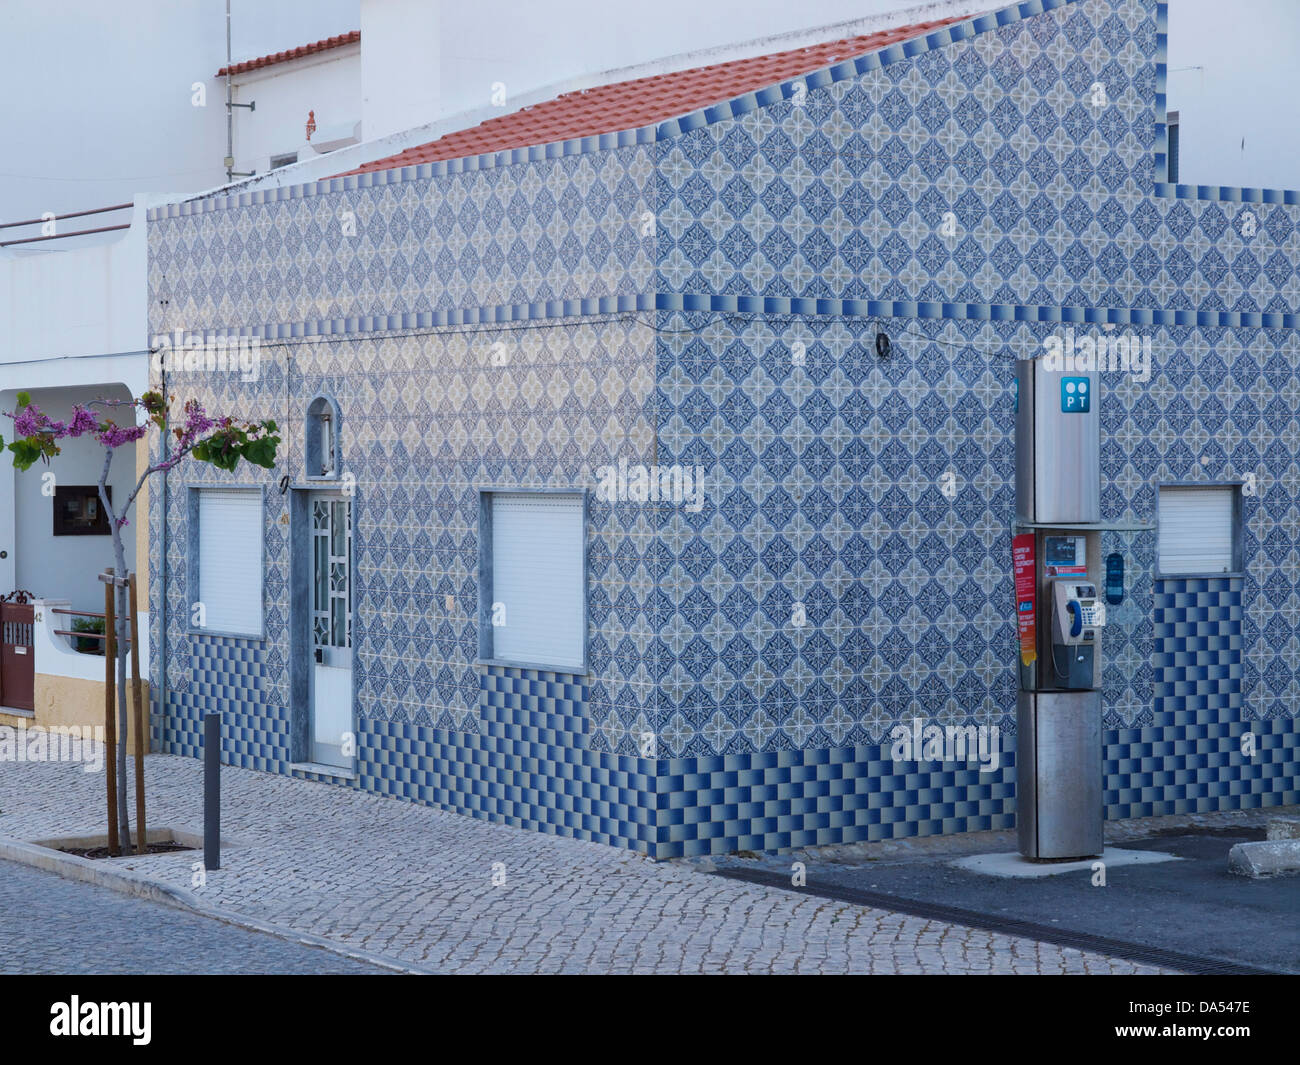 modern house completely clad in traditional azulejos tiles in Cabanas de Tavira, Algarve, Portugal Stock Photo